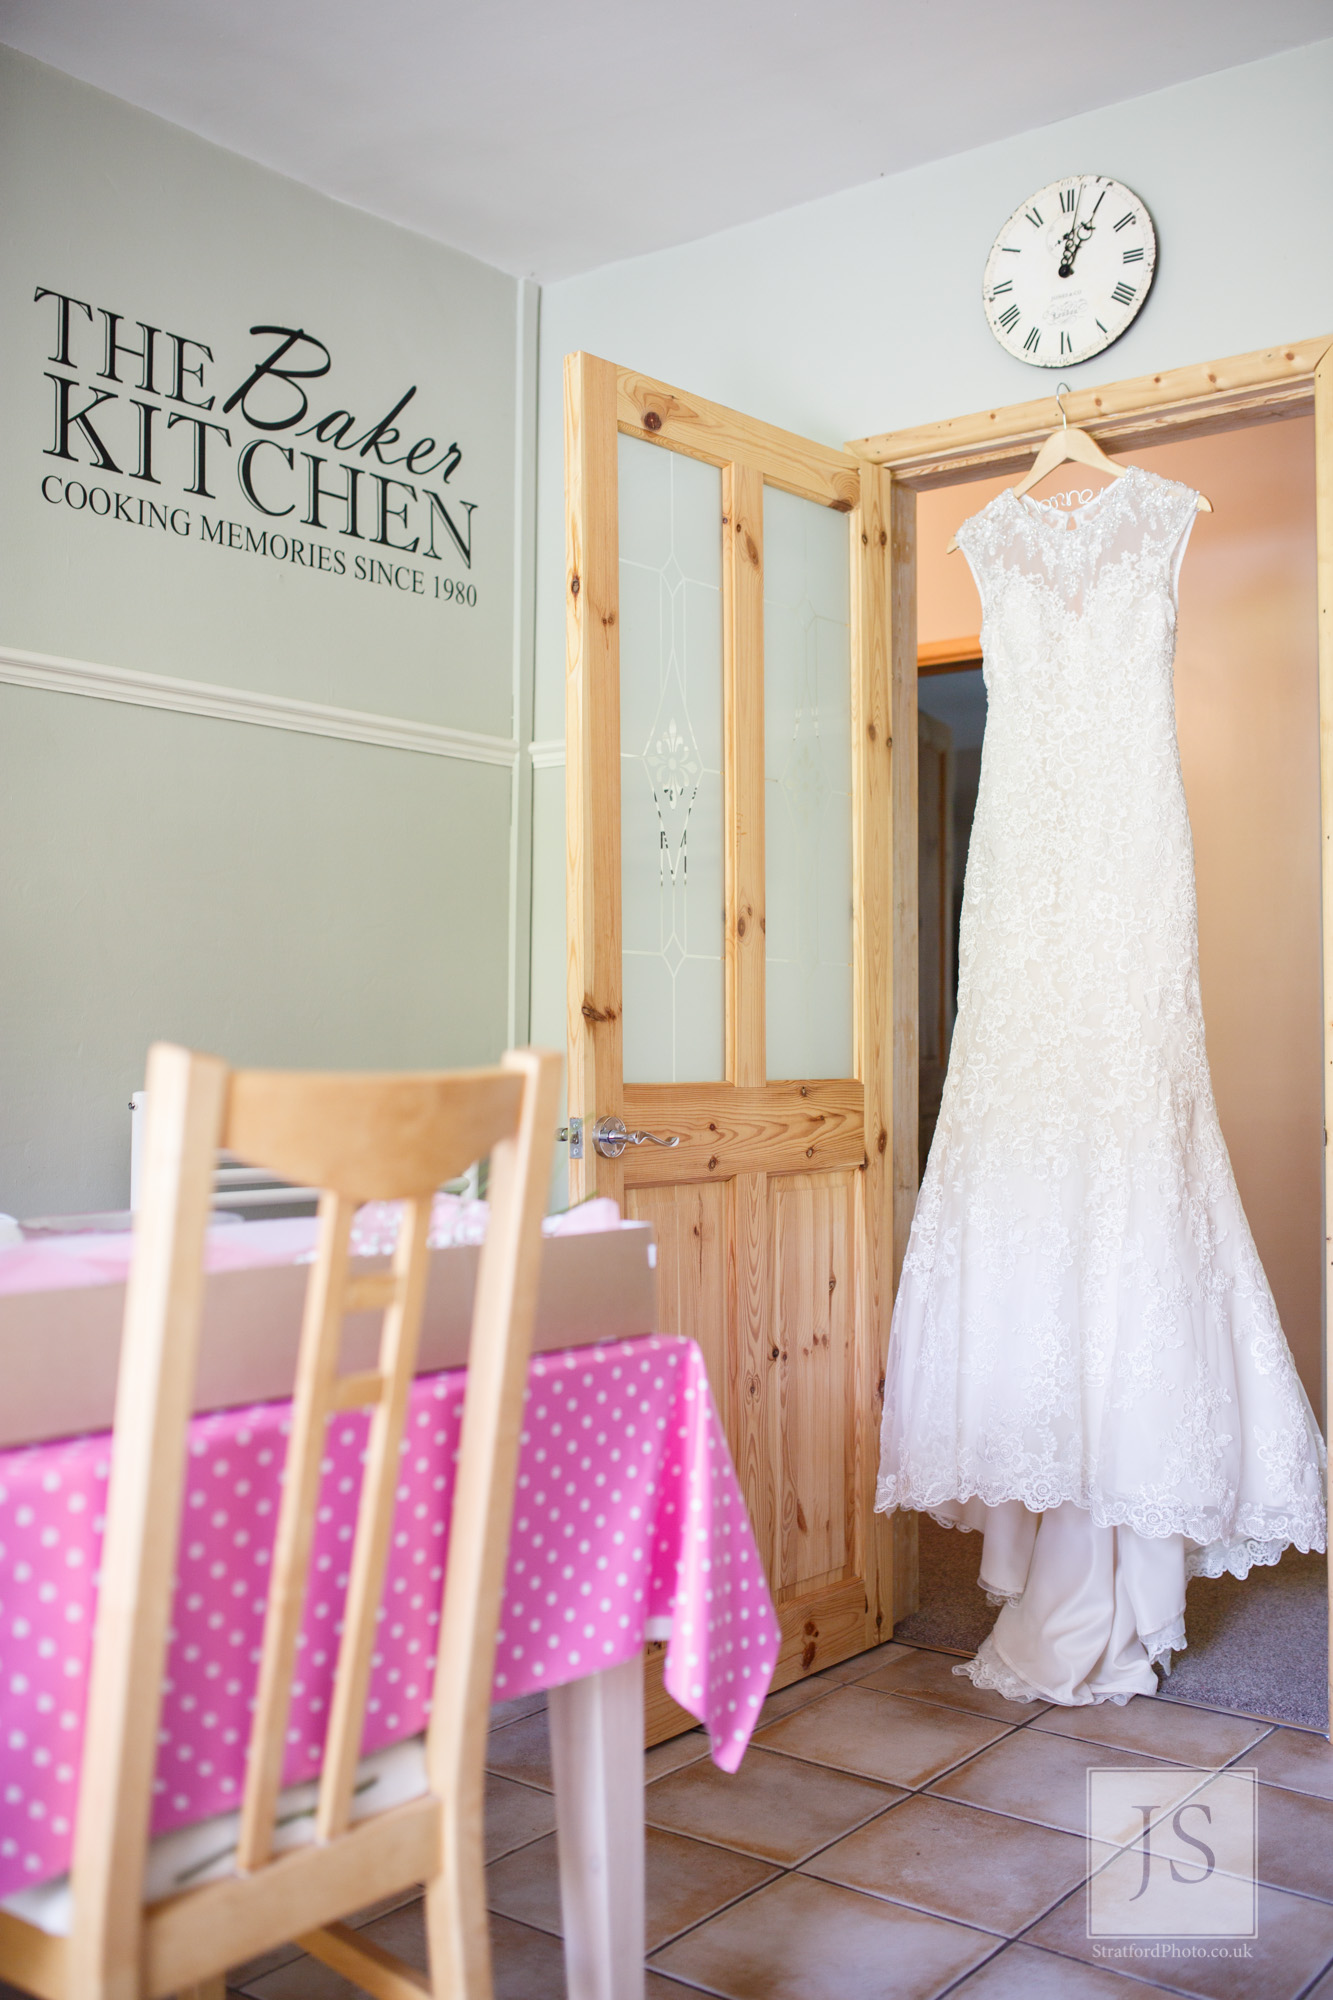 A wedding dress hangs in the family kitchen doorway.jpg